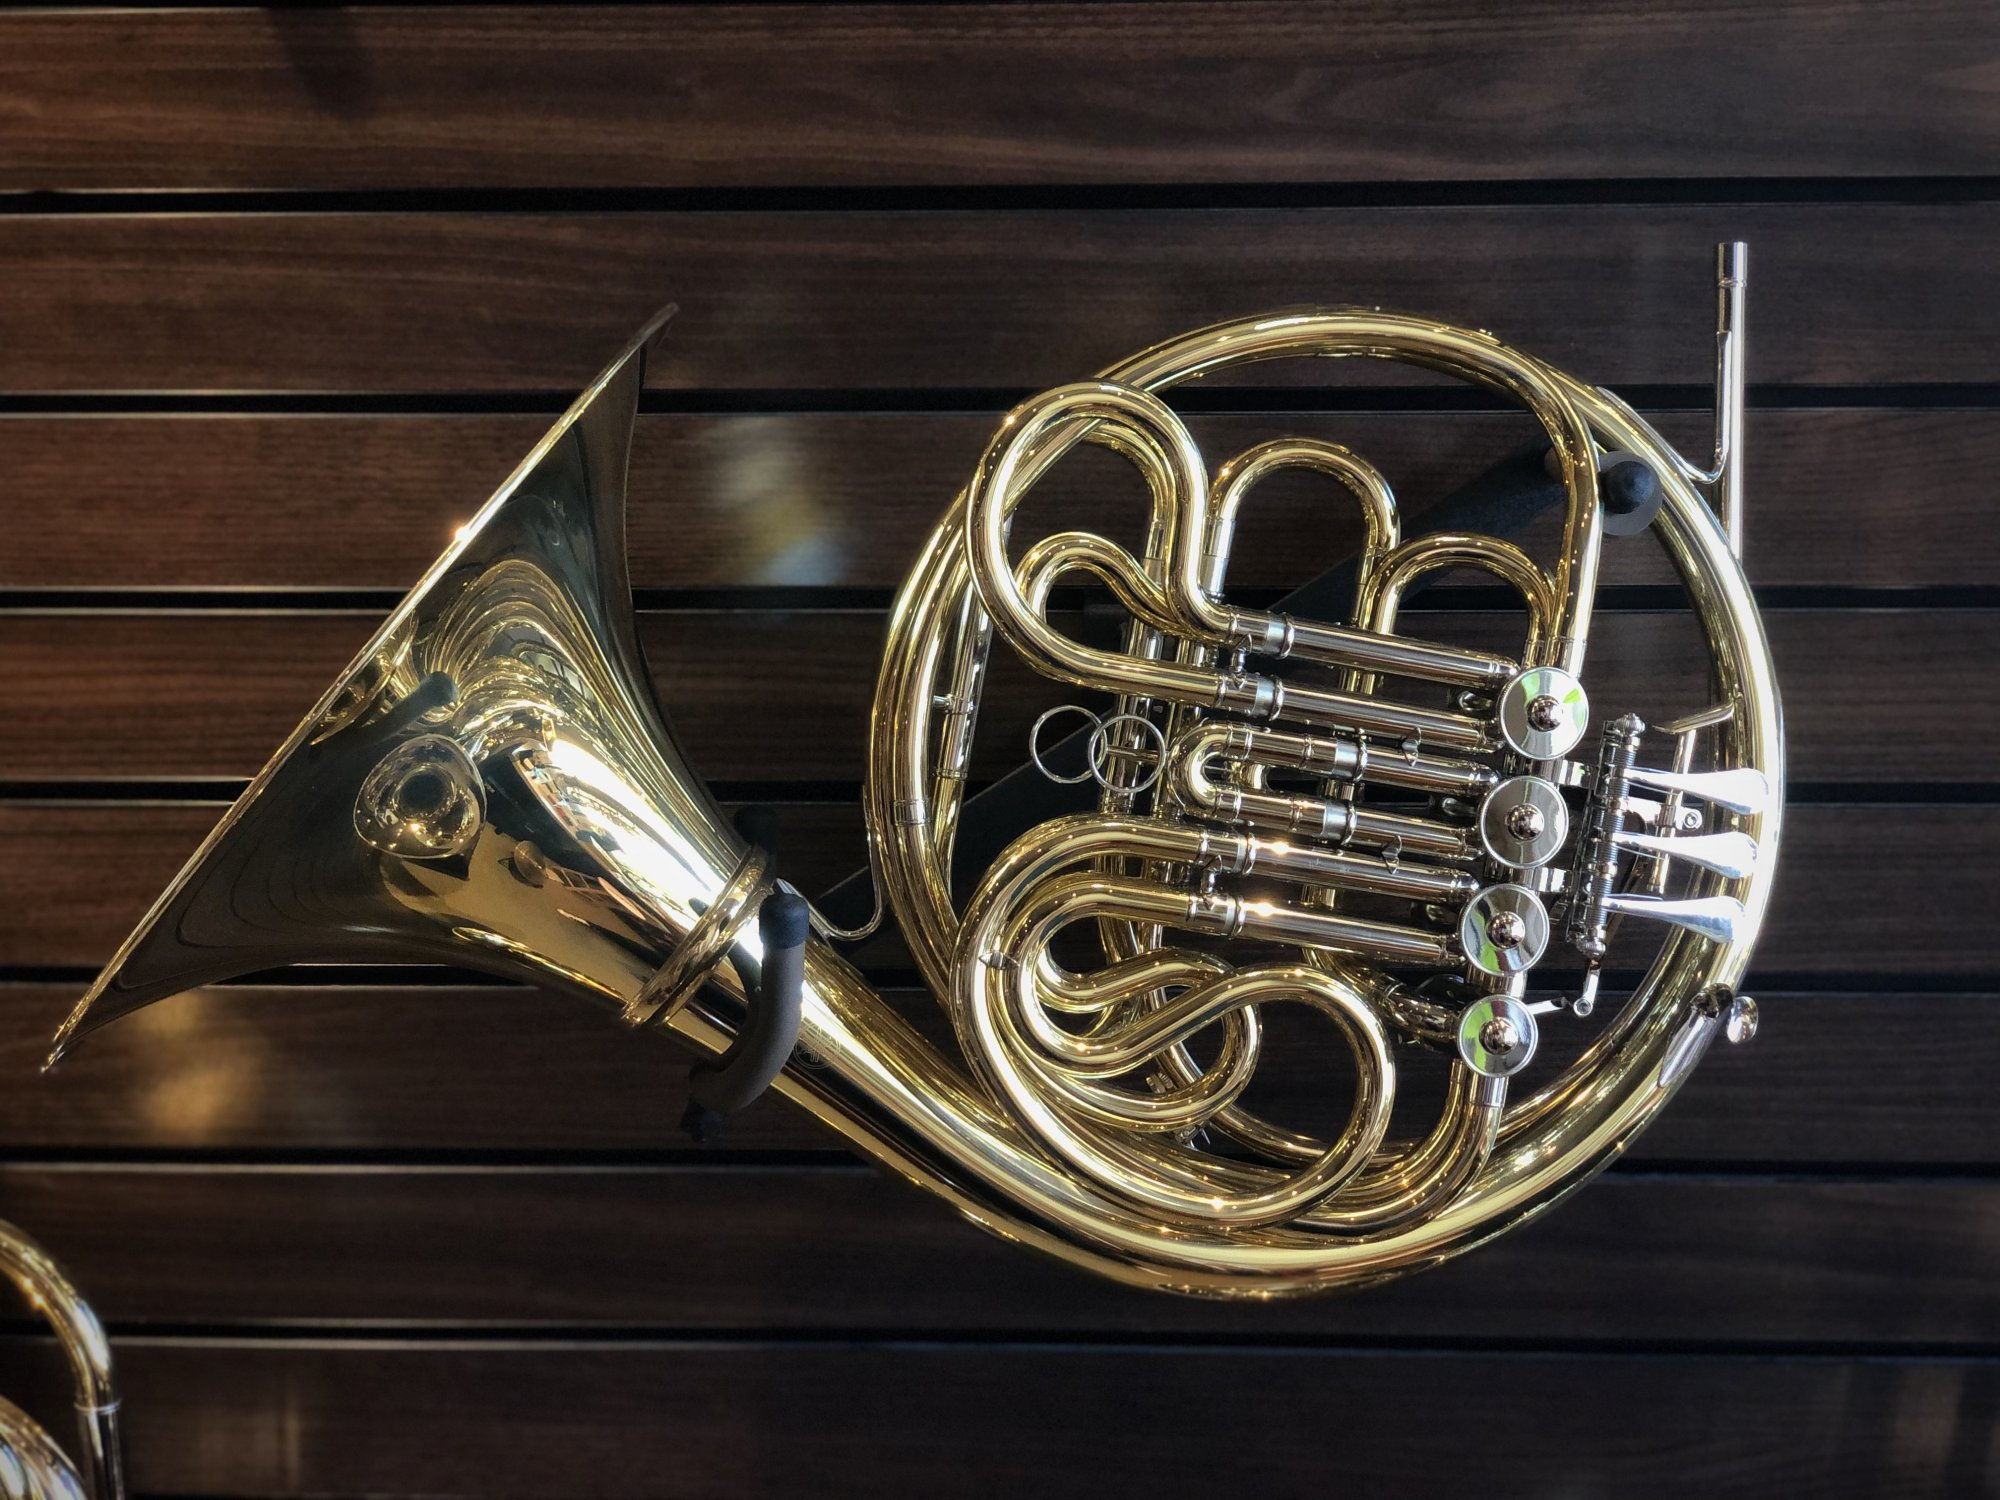 Yamaha YHR-671D Double French Horn with Detachable Bell